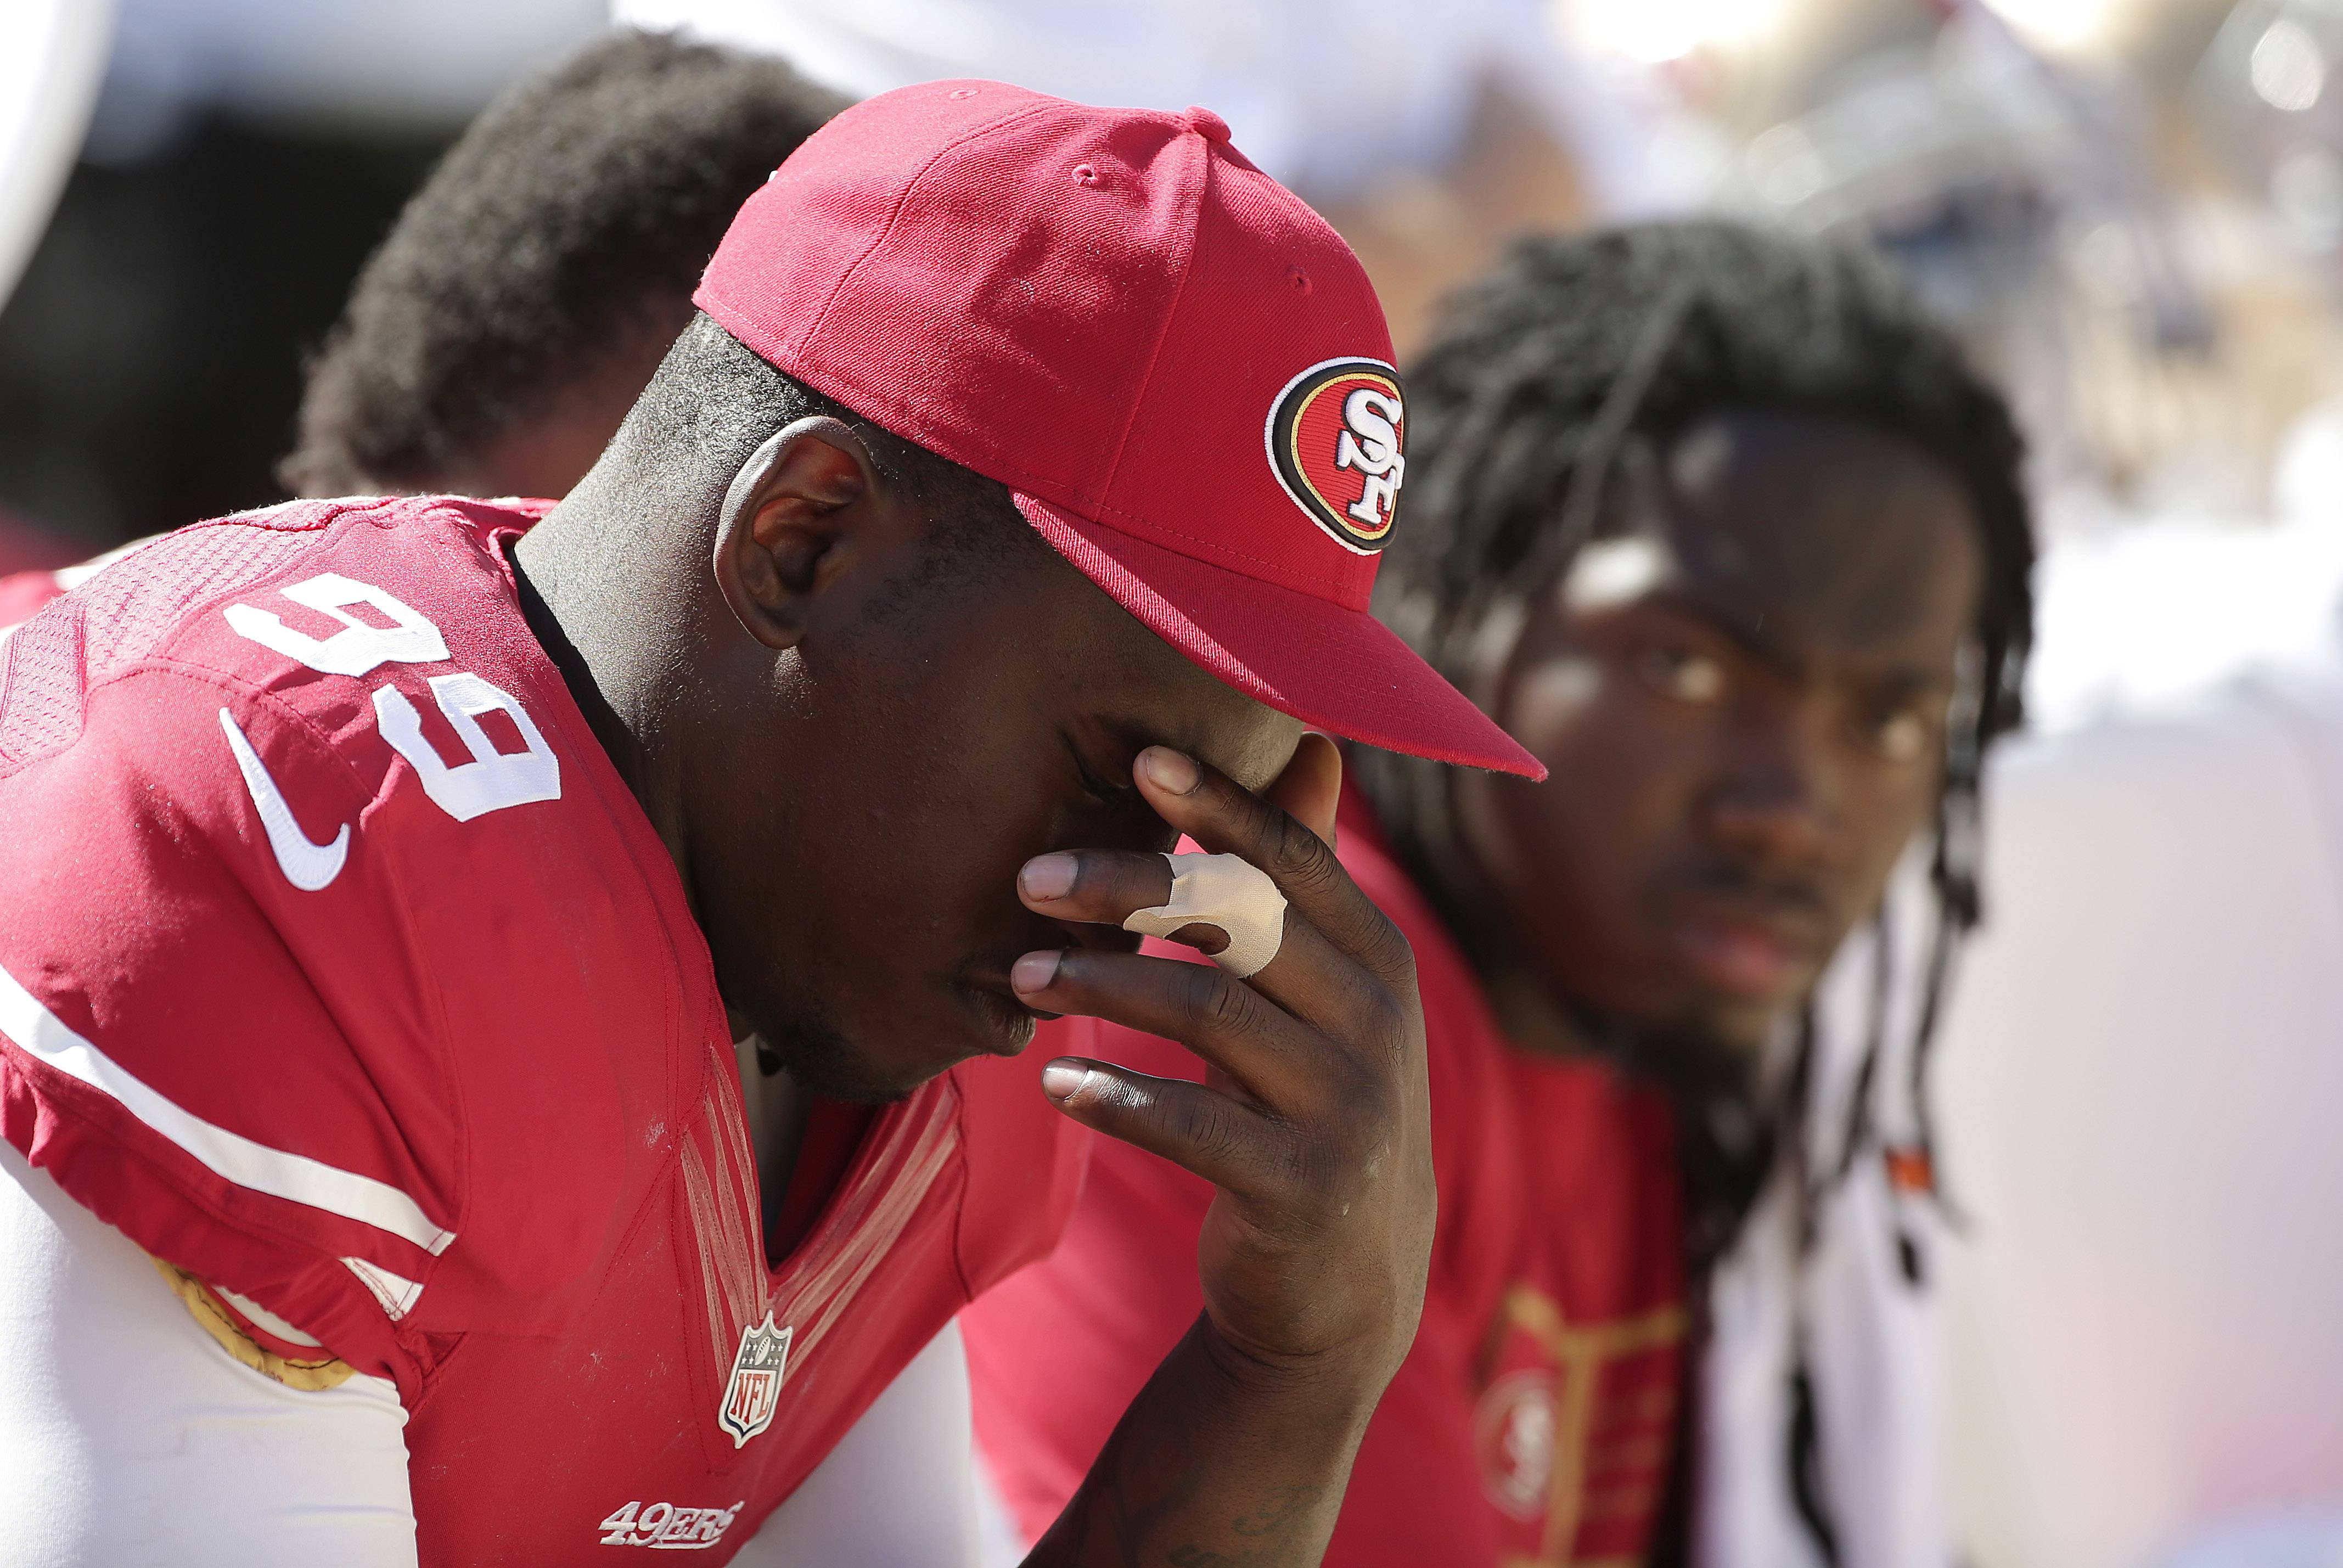 Aldon Smith has been suspended for nine games by the NFL after a series of off-field legal issues. A statement Frida from the league said Smith had violated the NFL's substance abuse and personal conduct policies.